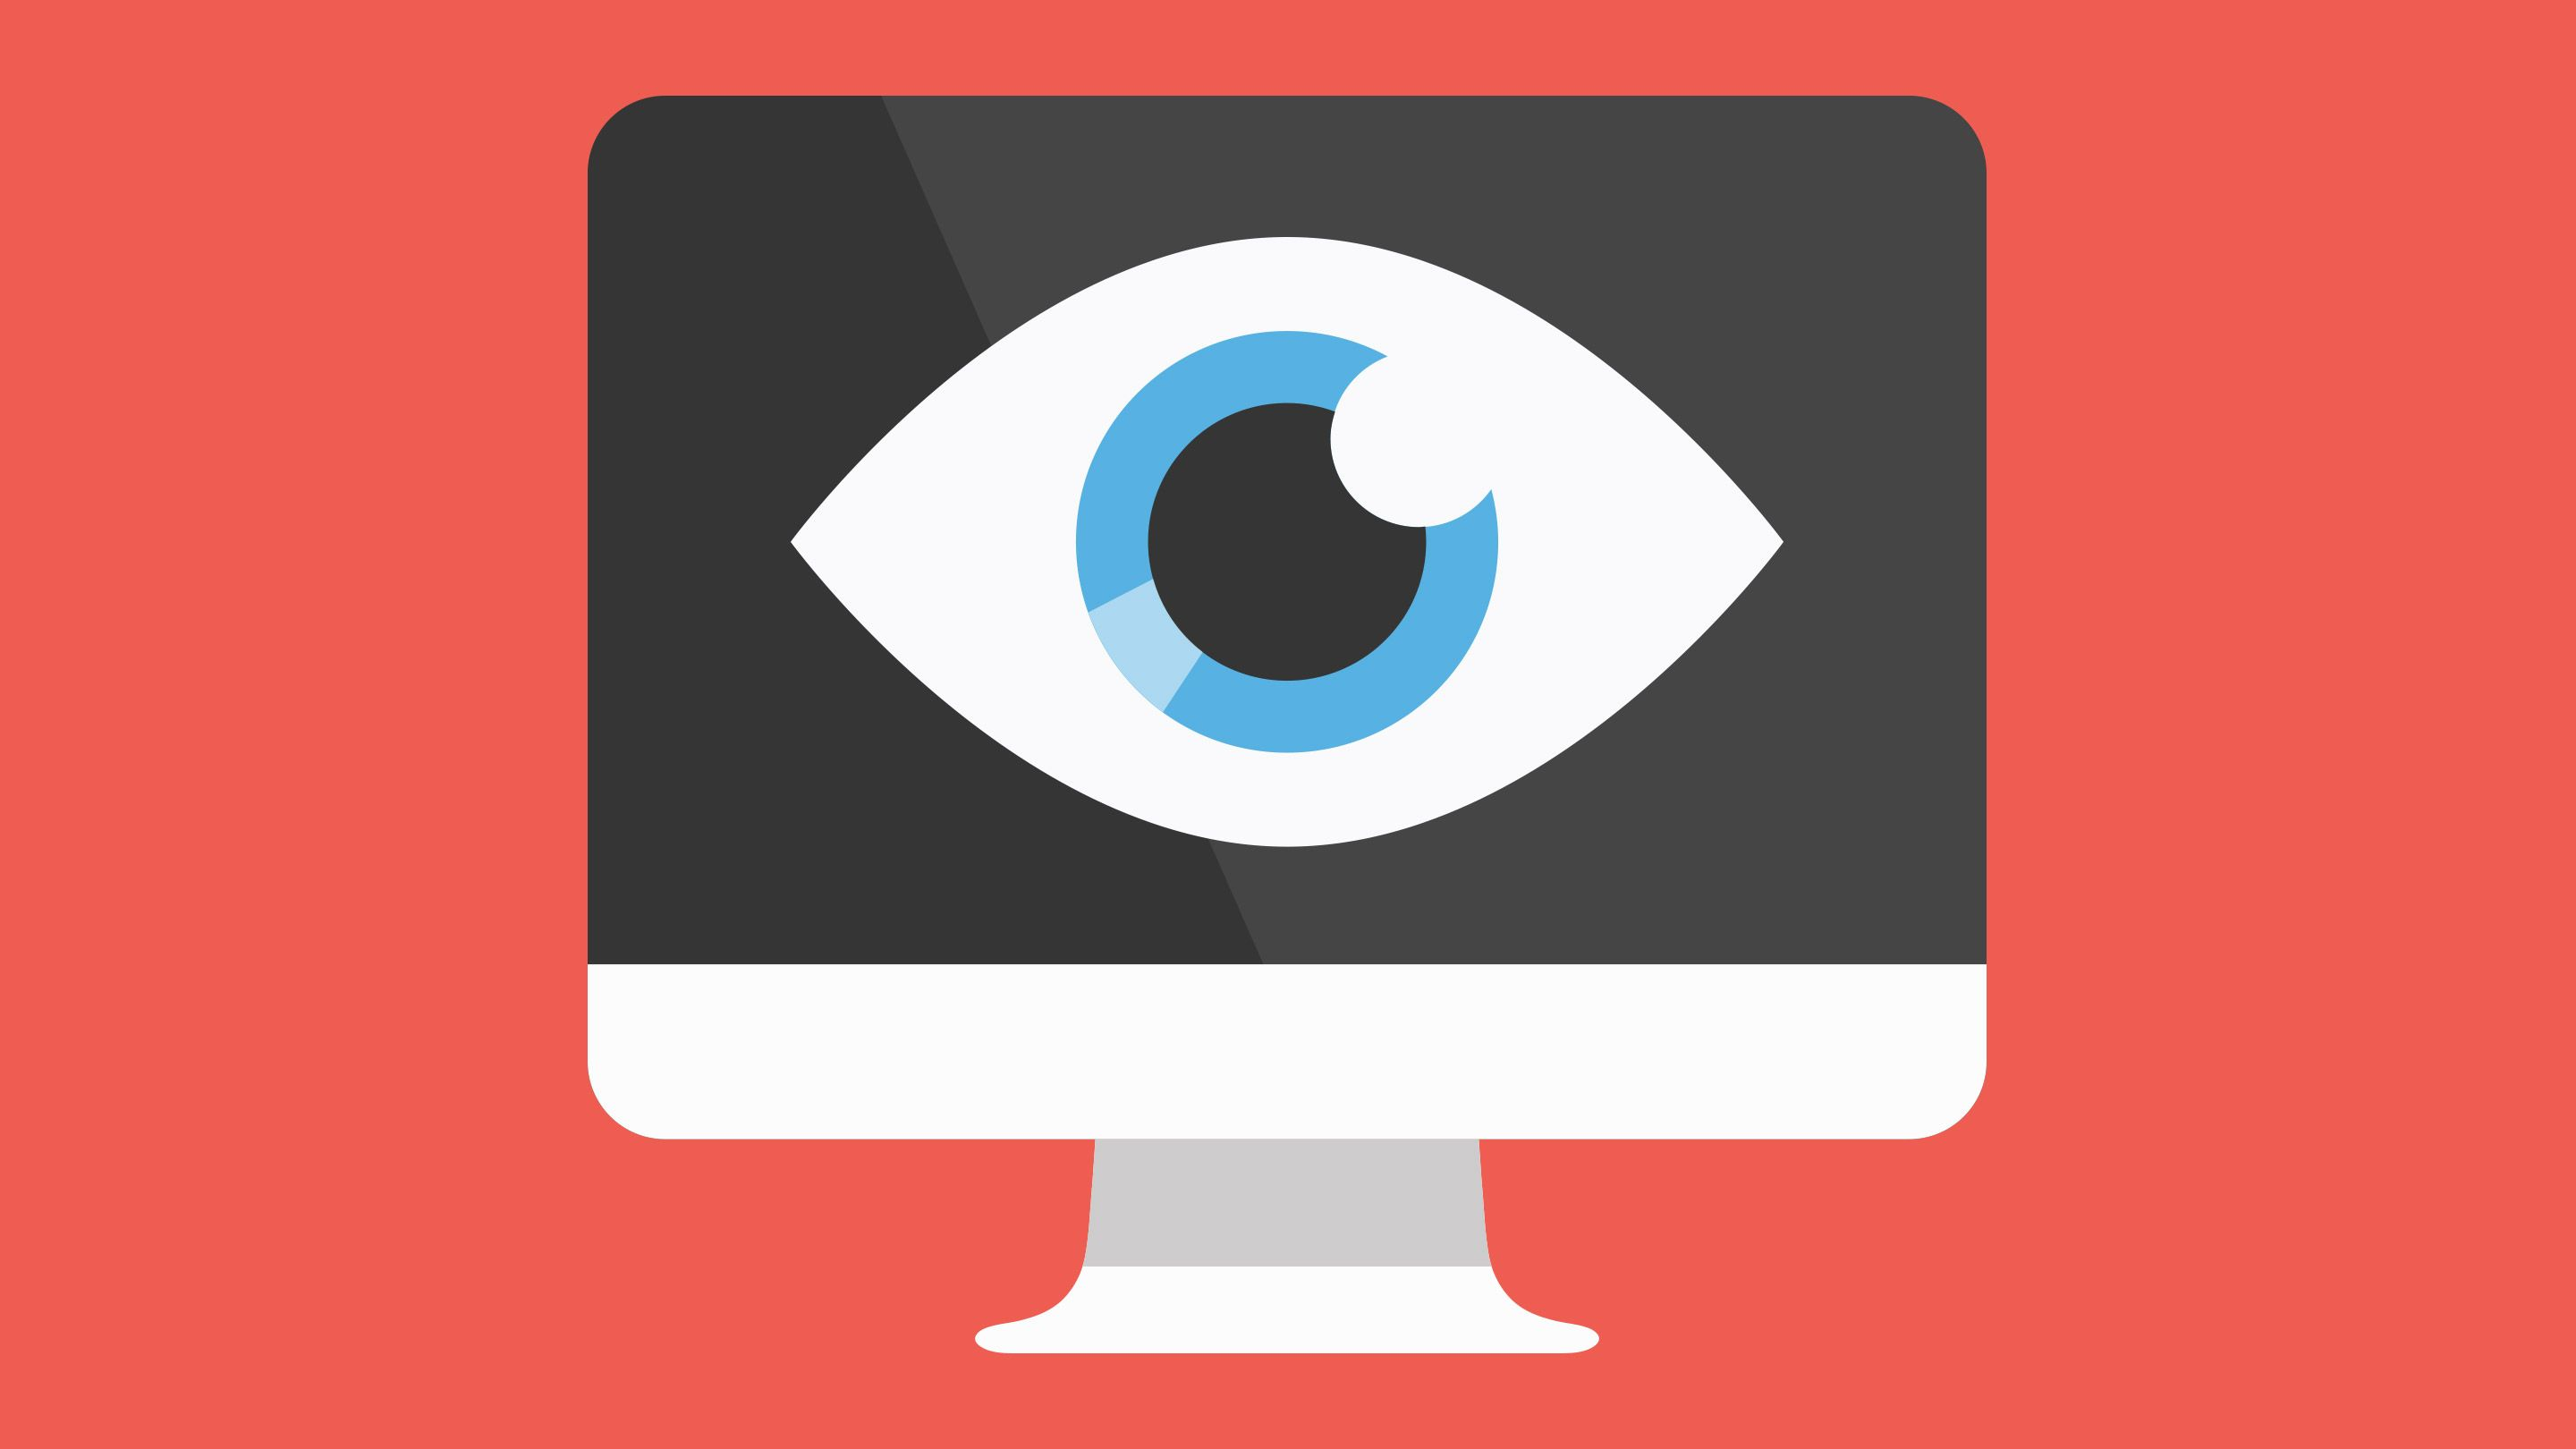 An illustration of an eyeball looking out from a computer screen.